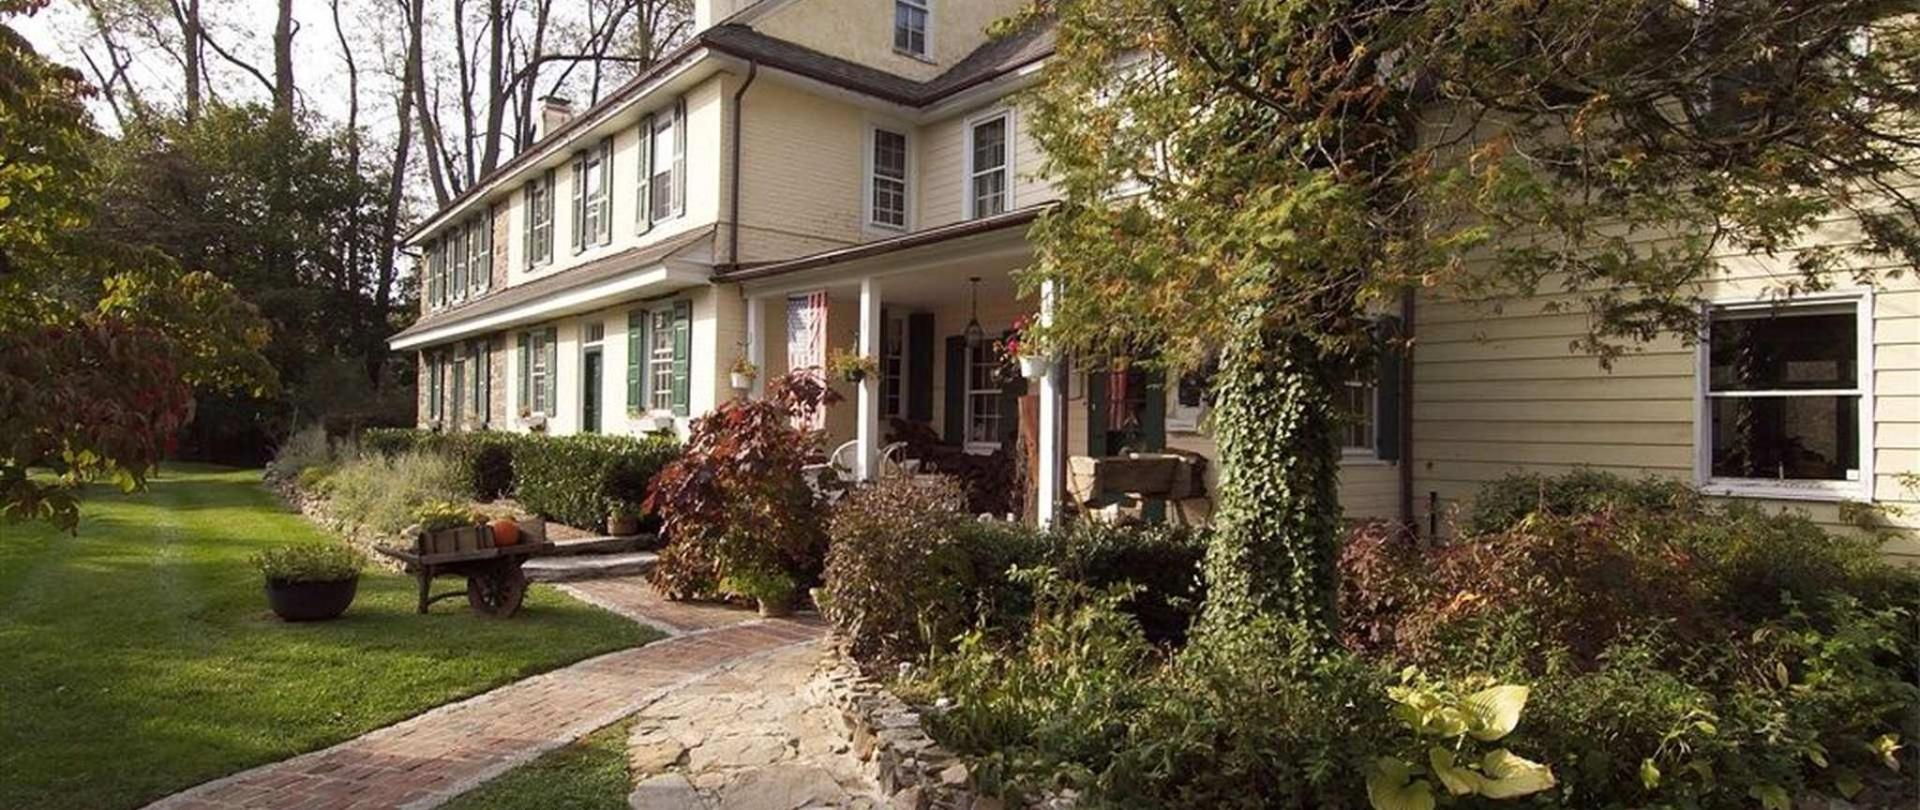 The Pennsbury Inn Bed And Breakfast Chadds Ford Pa